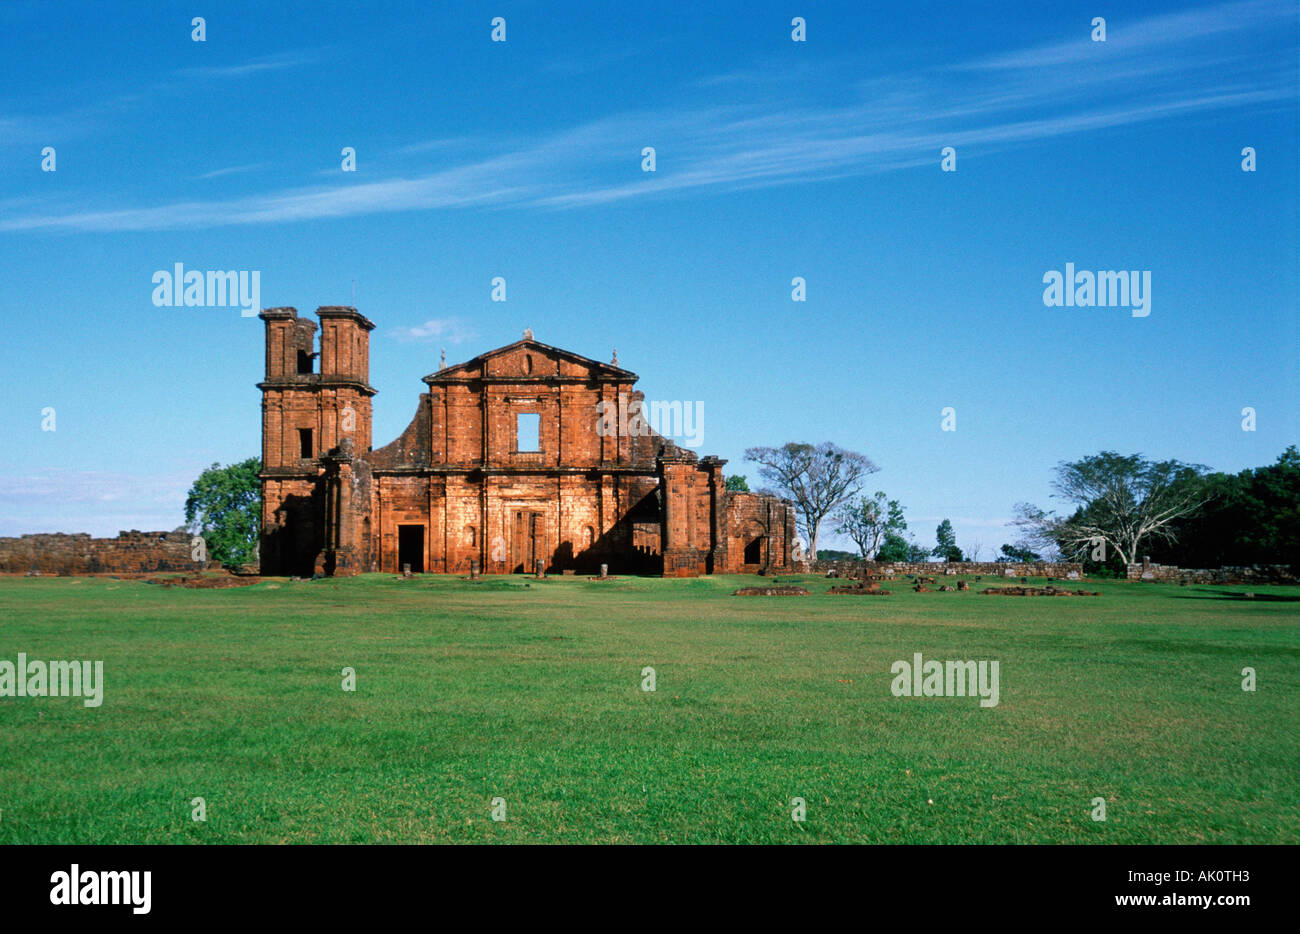 Jesuit mission of Sao Miguel das Missoes - Stock Image